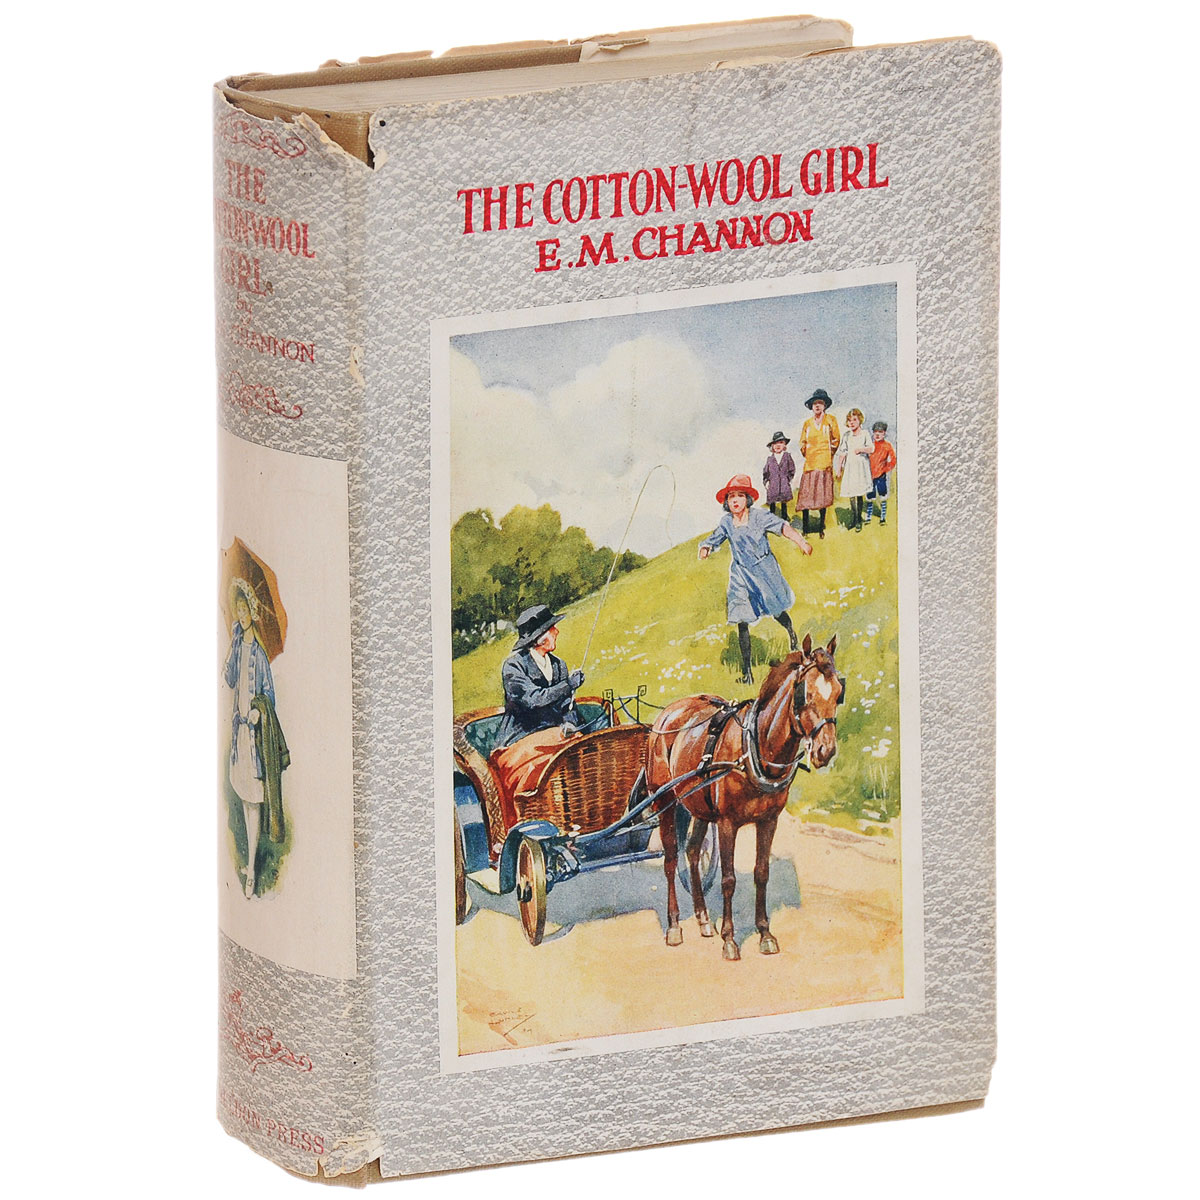 E. M. Channon The Cotton-wool Girl sheldon m ross simulation fourth edition